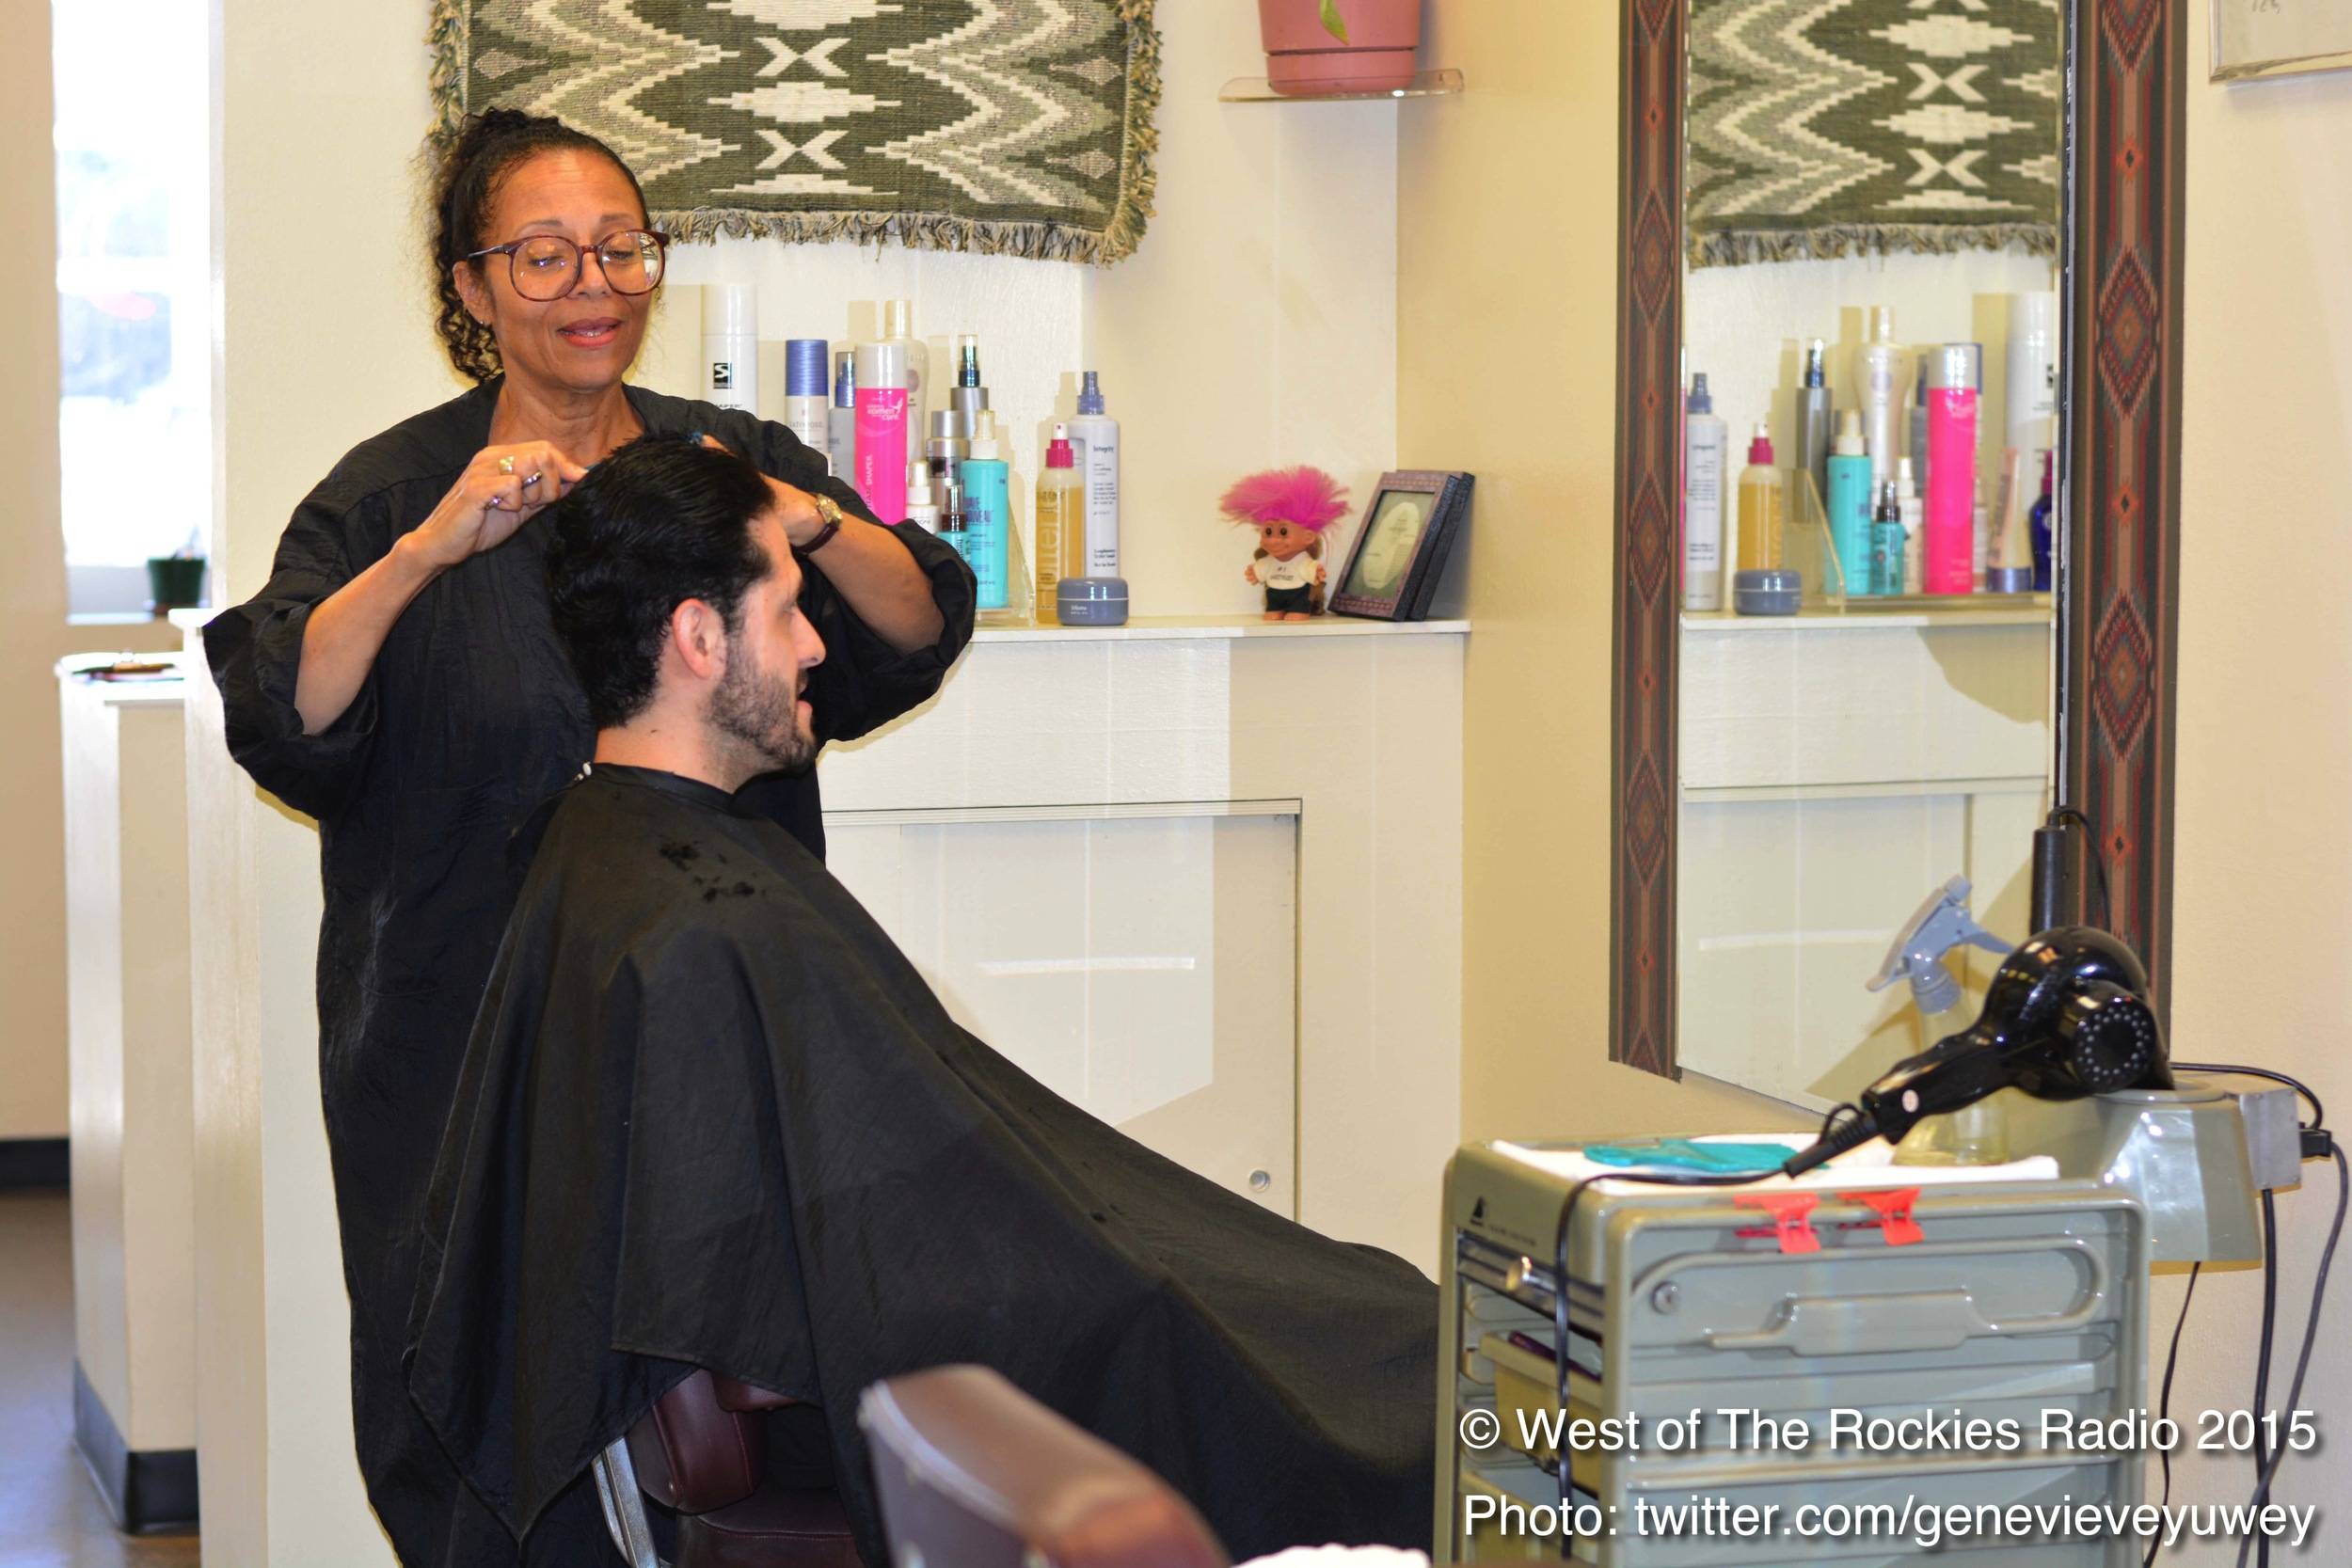 Frank getting a haircut from Lynn at Shear Perfection.